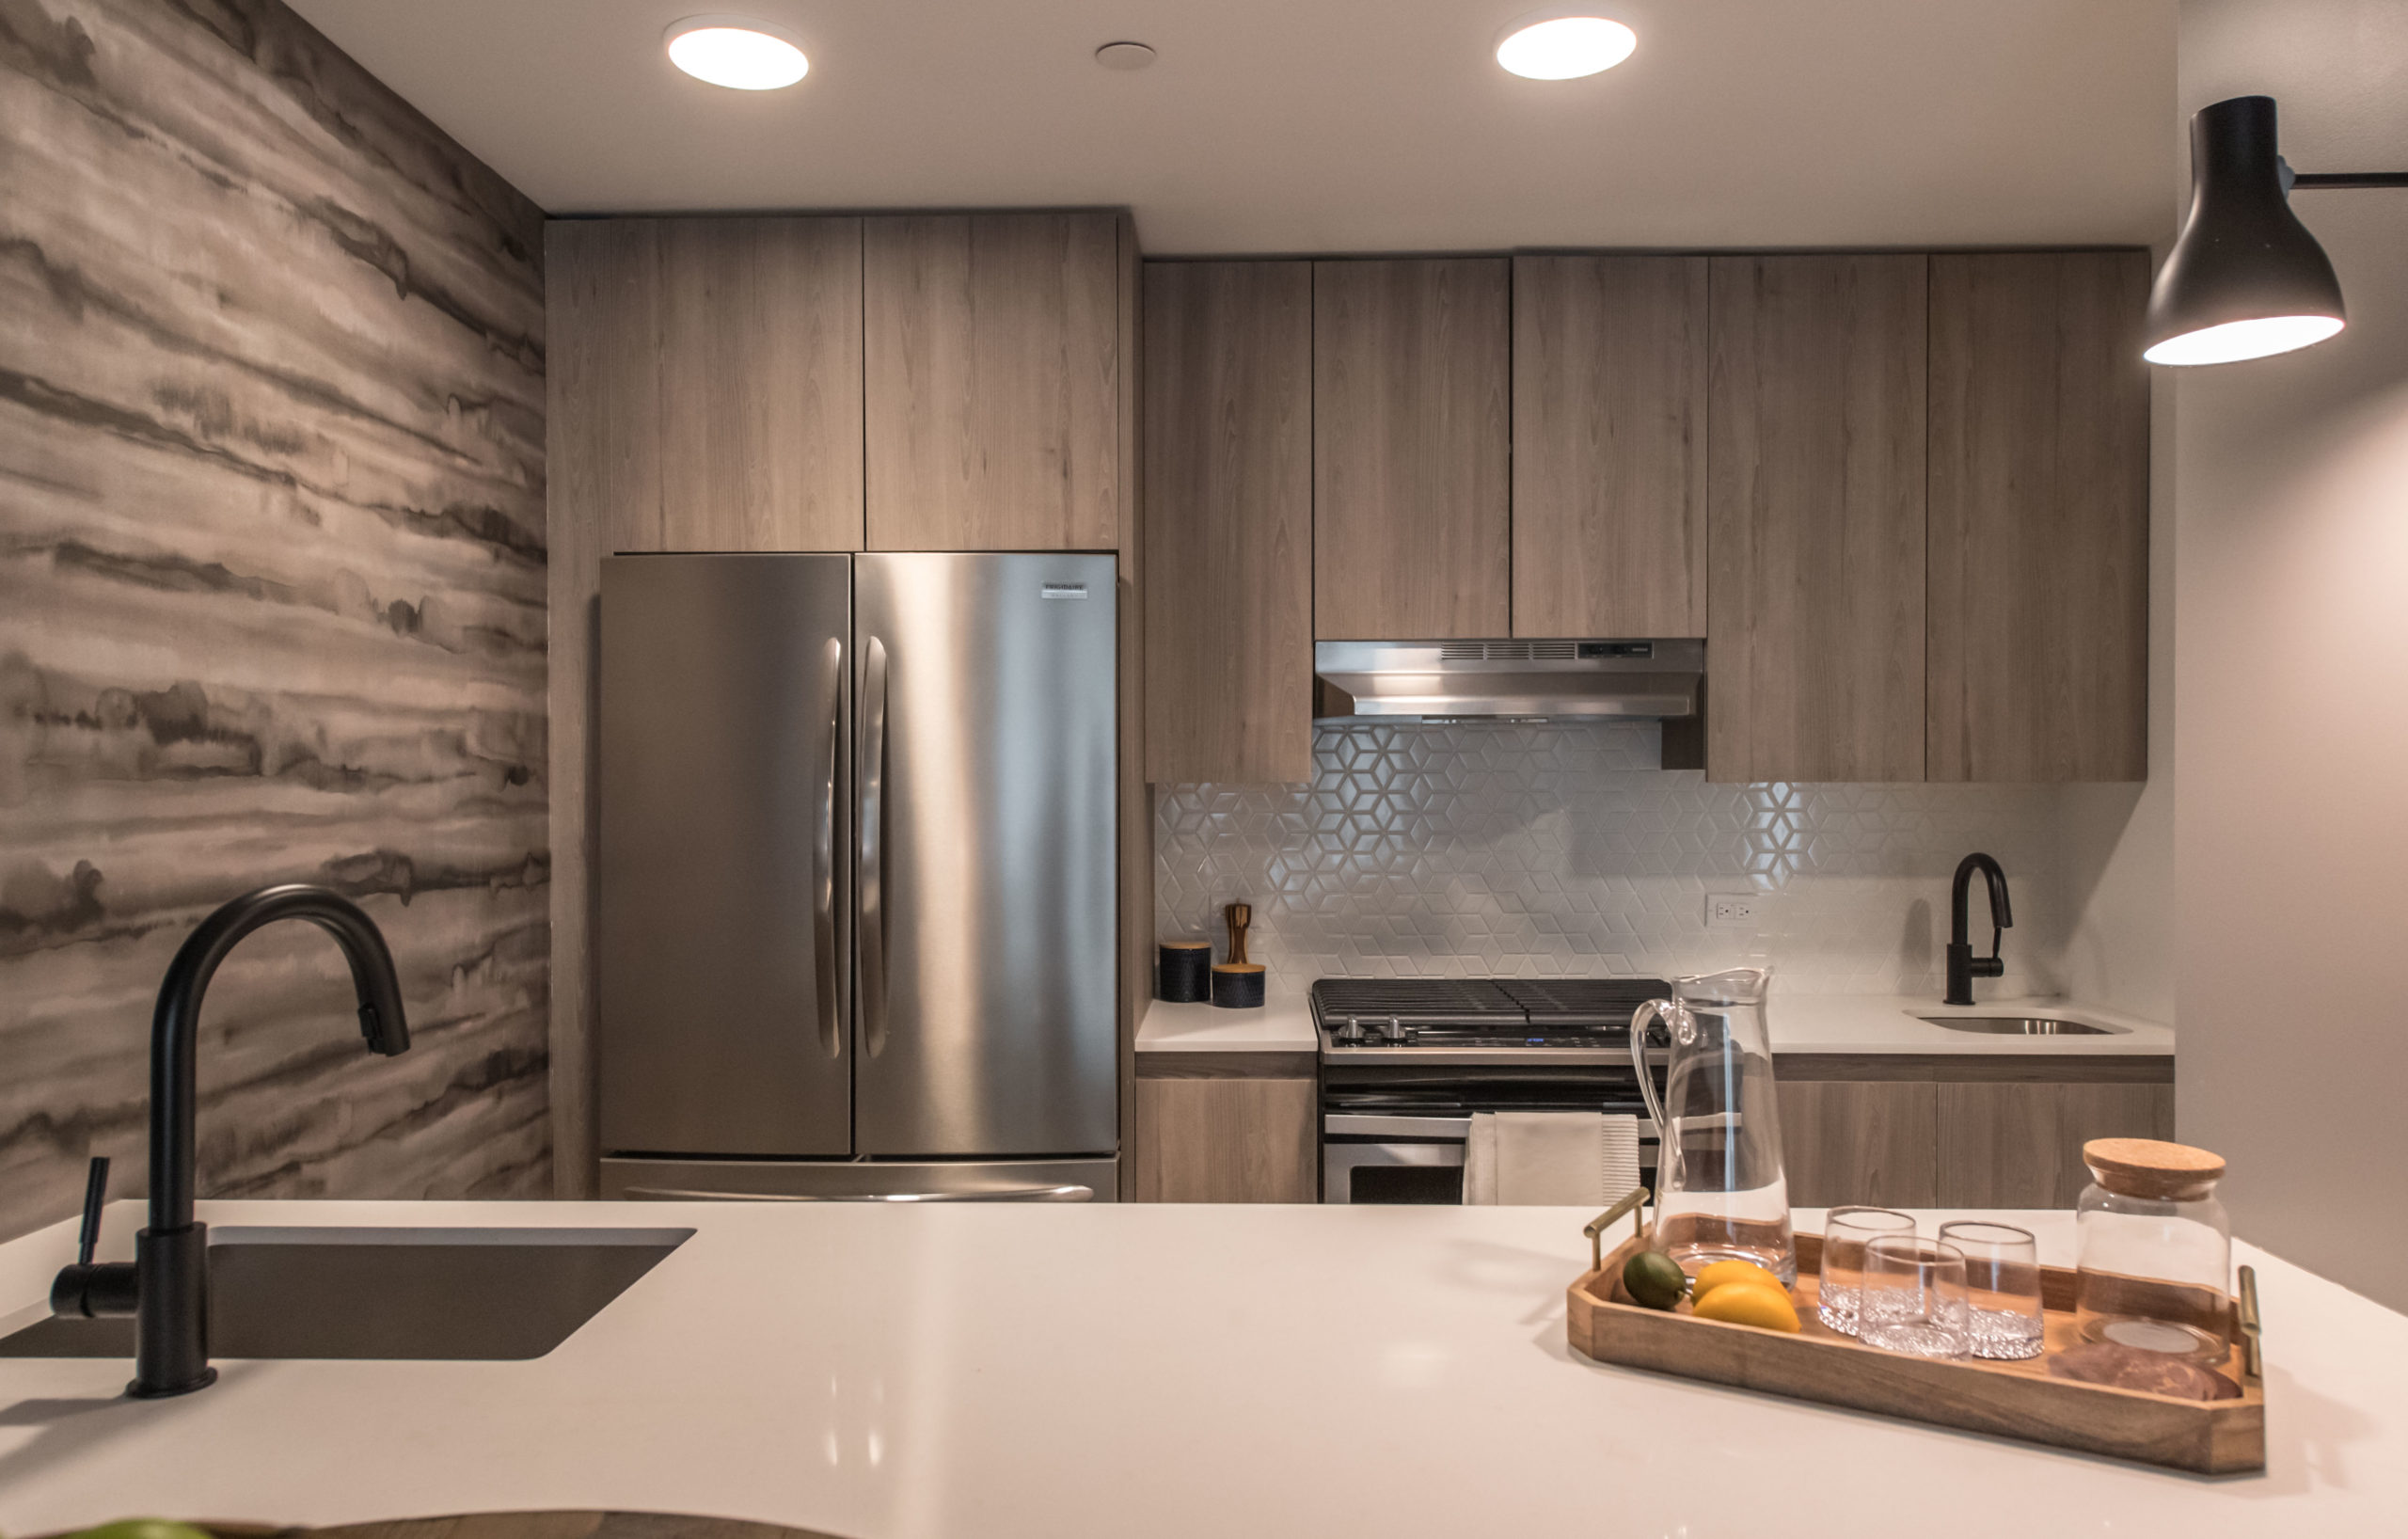 Stainless steel appliances inside a kitchen at The Vitagraph Apartments Brooklyn, NY